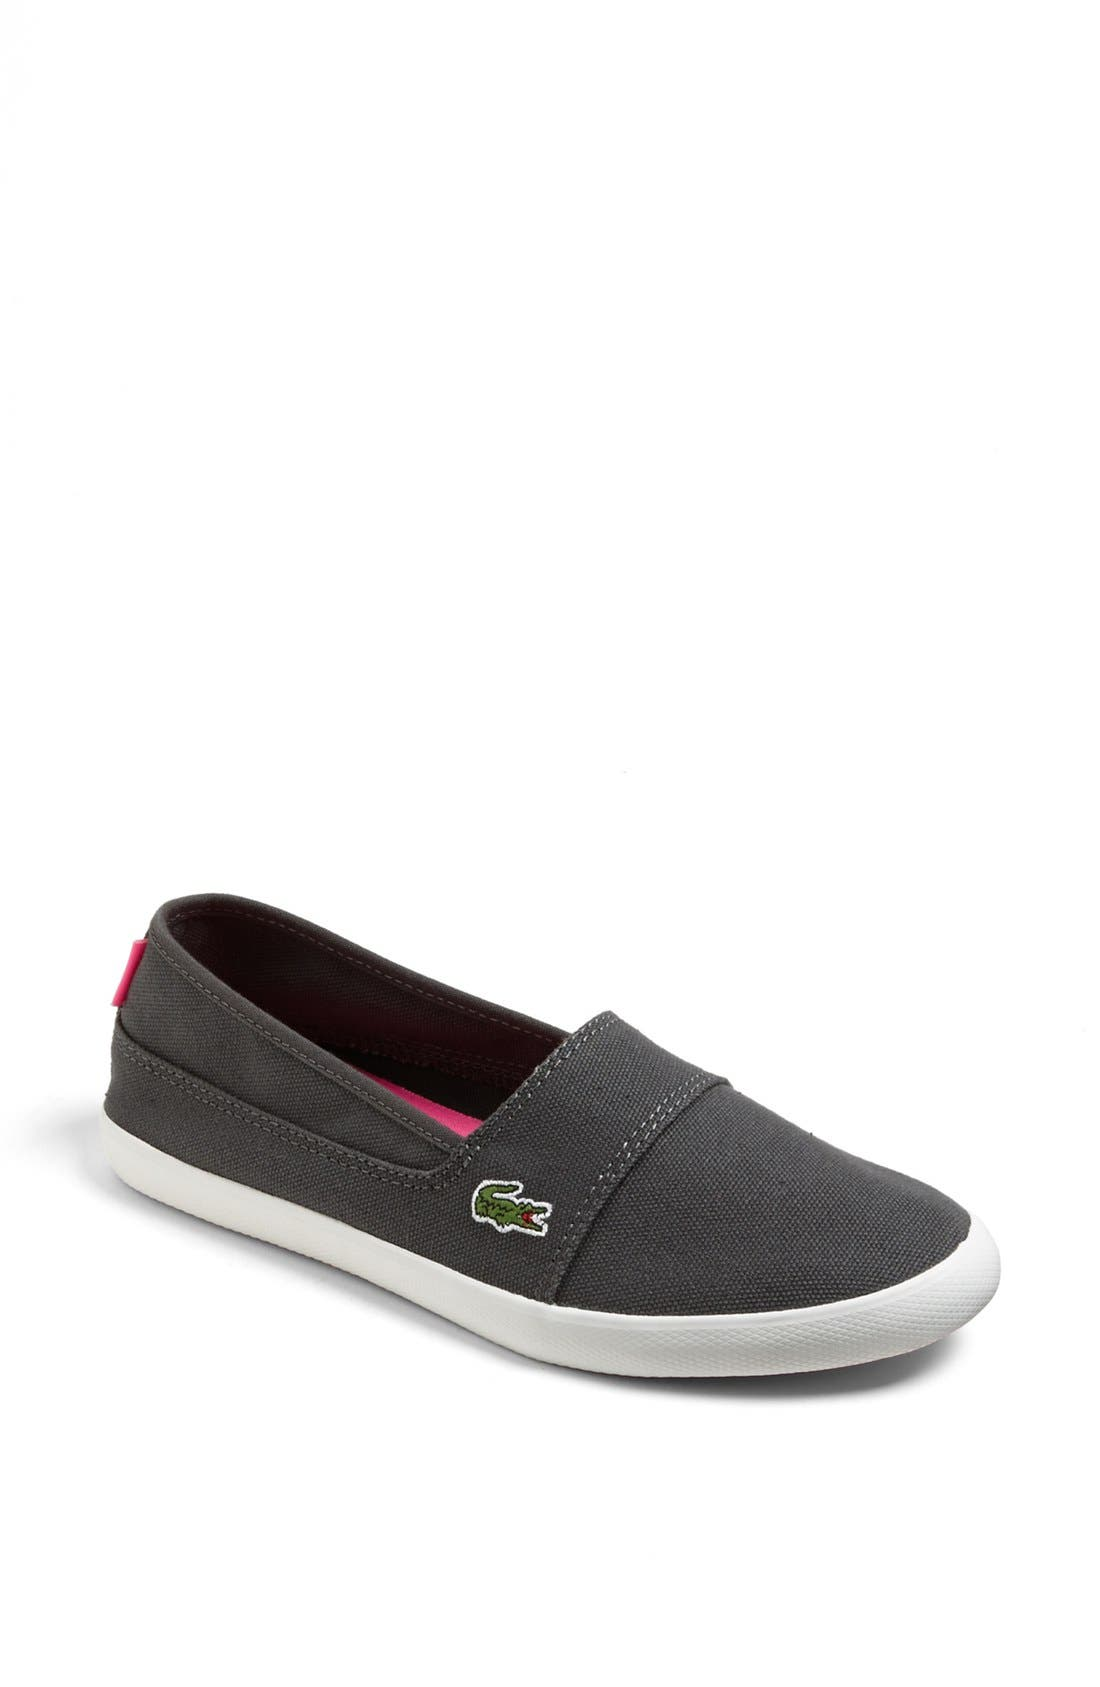 Alternate Image 1 Selected - Lacoste 'Maurice' Sneaker (Women) (Online Only)